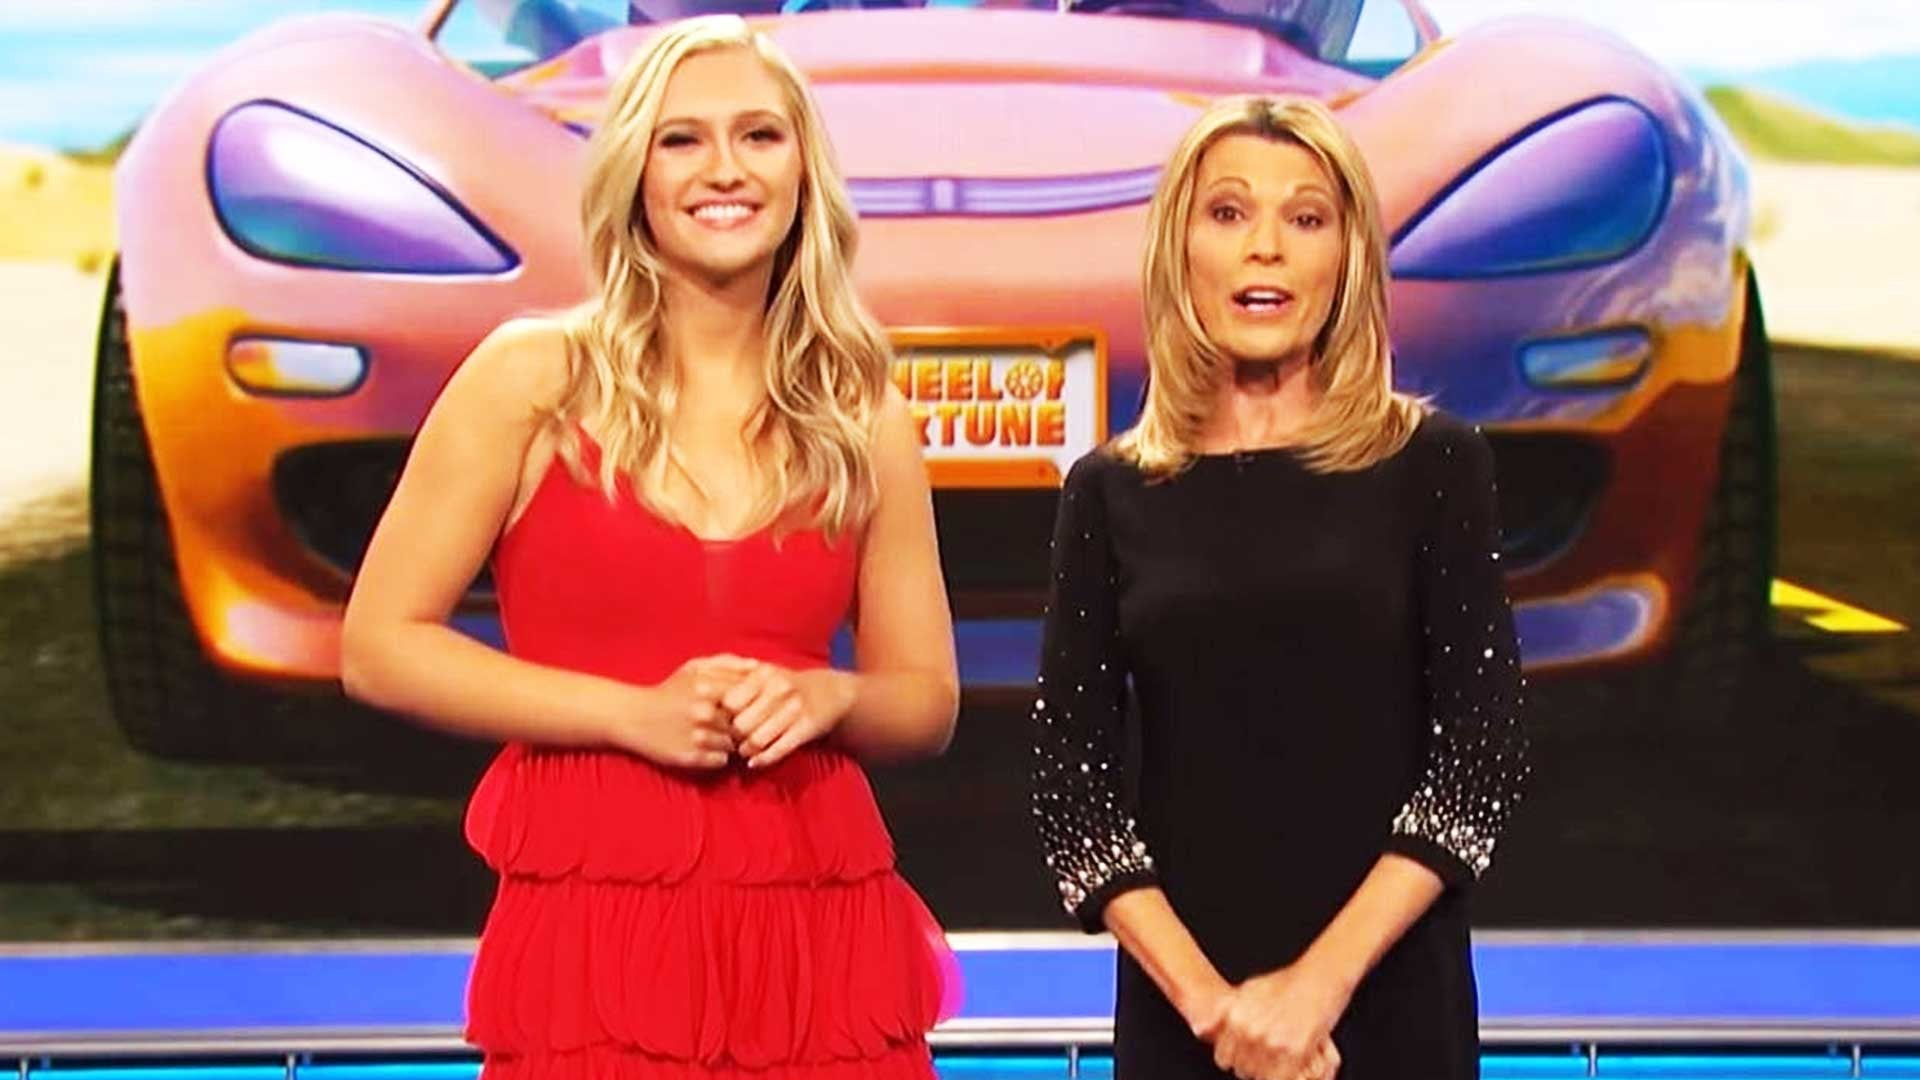 Pat Sajak S Daughter Joins Wheel Of Fortune As Guest Letter Turner While Vanna White Hosts Entertainment Tonight